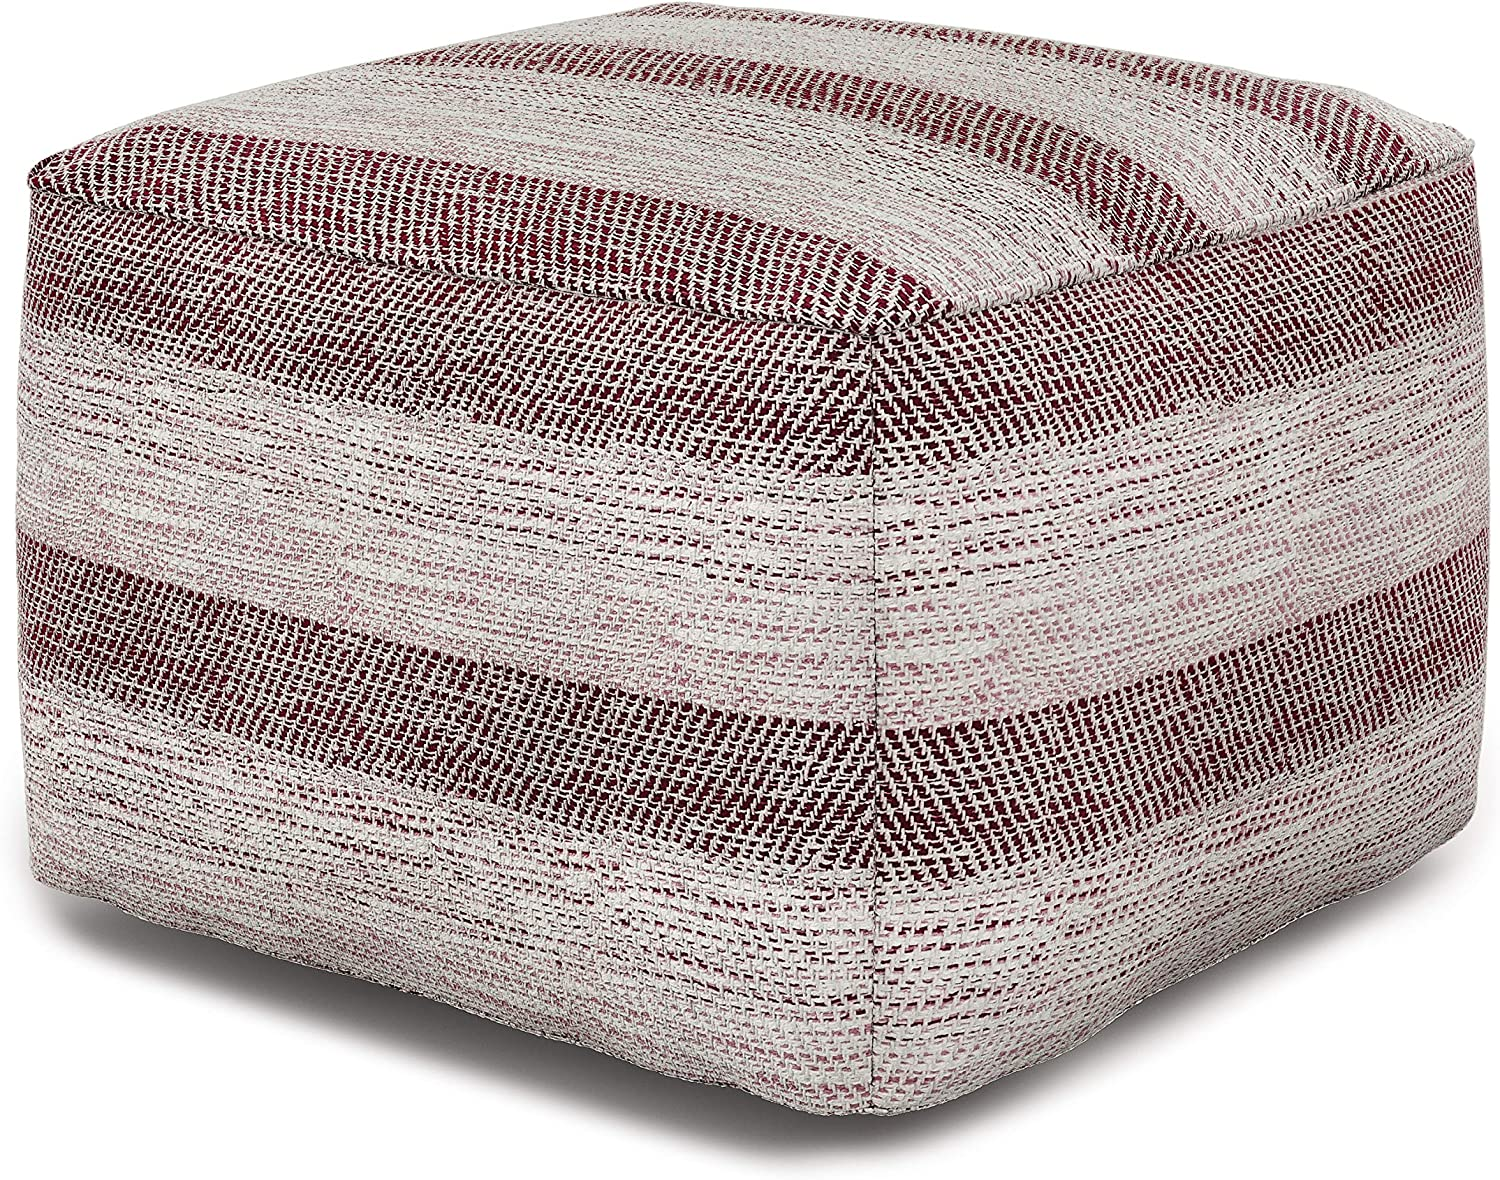 SIMPLIHOME Clay Square Pouf, Footstool, Upholstered in Patterned Maroon Melange Hand Woven Cotton, for the Living Room, Bedroom and Kids Room, Transitional, Modern